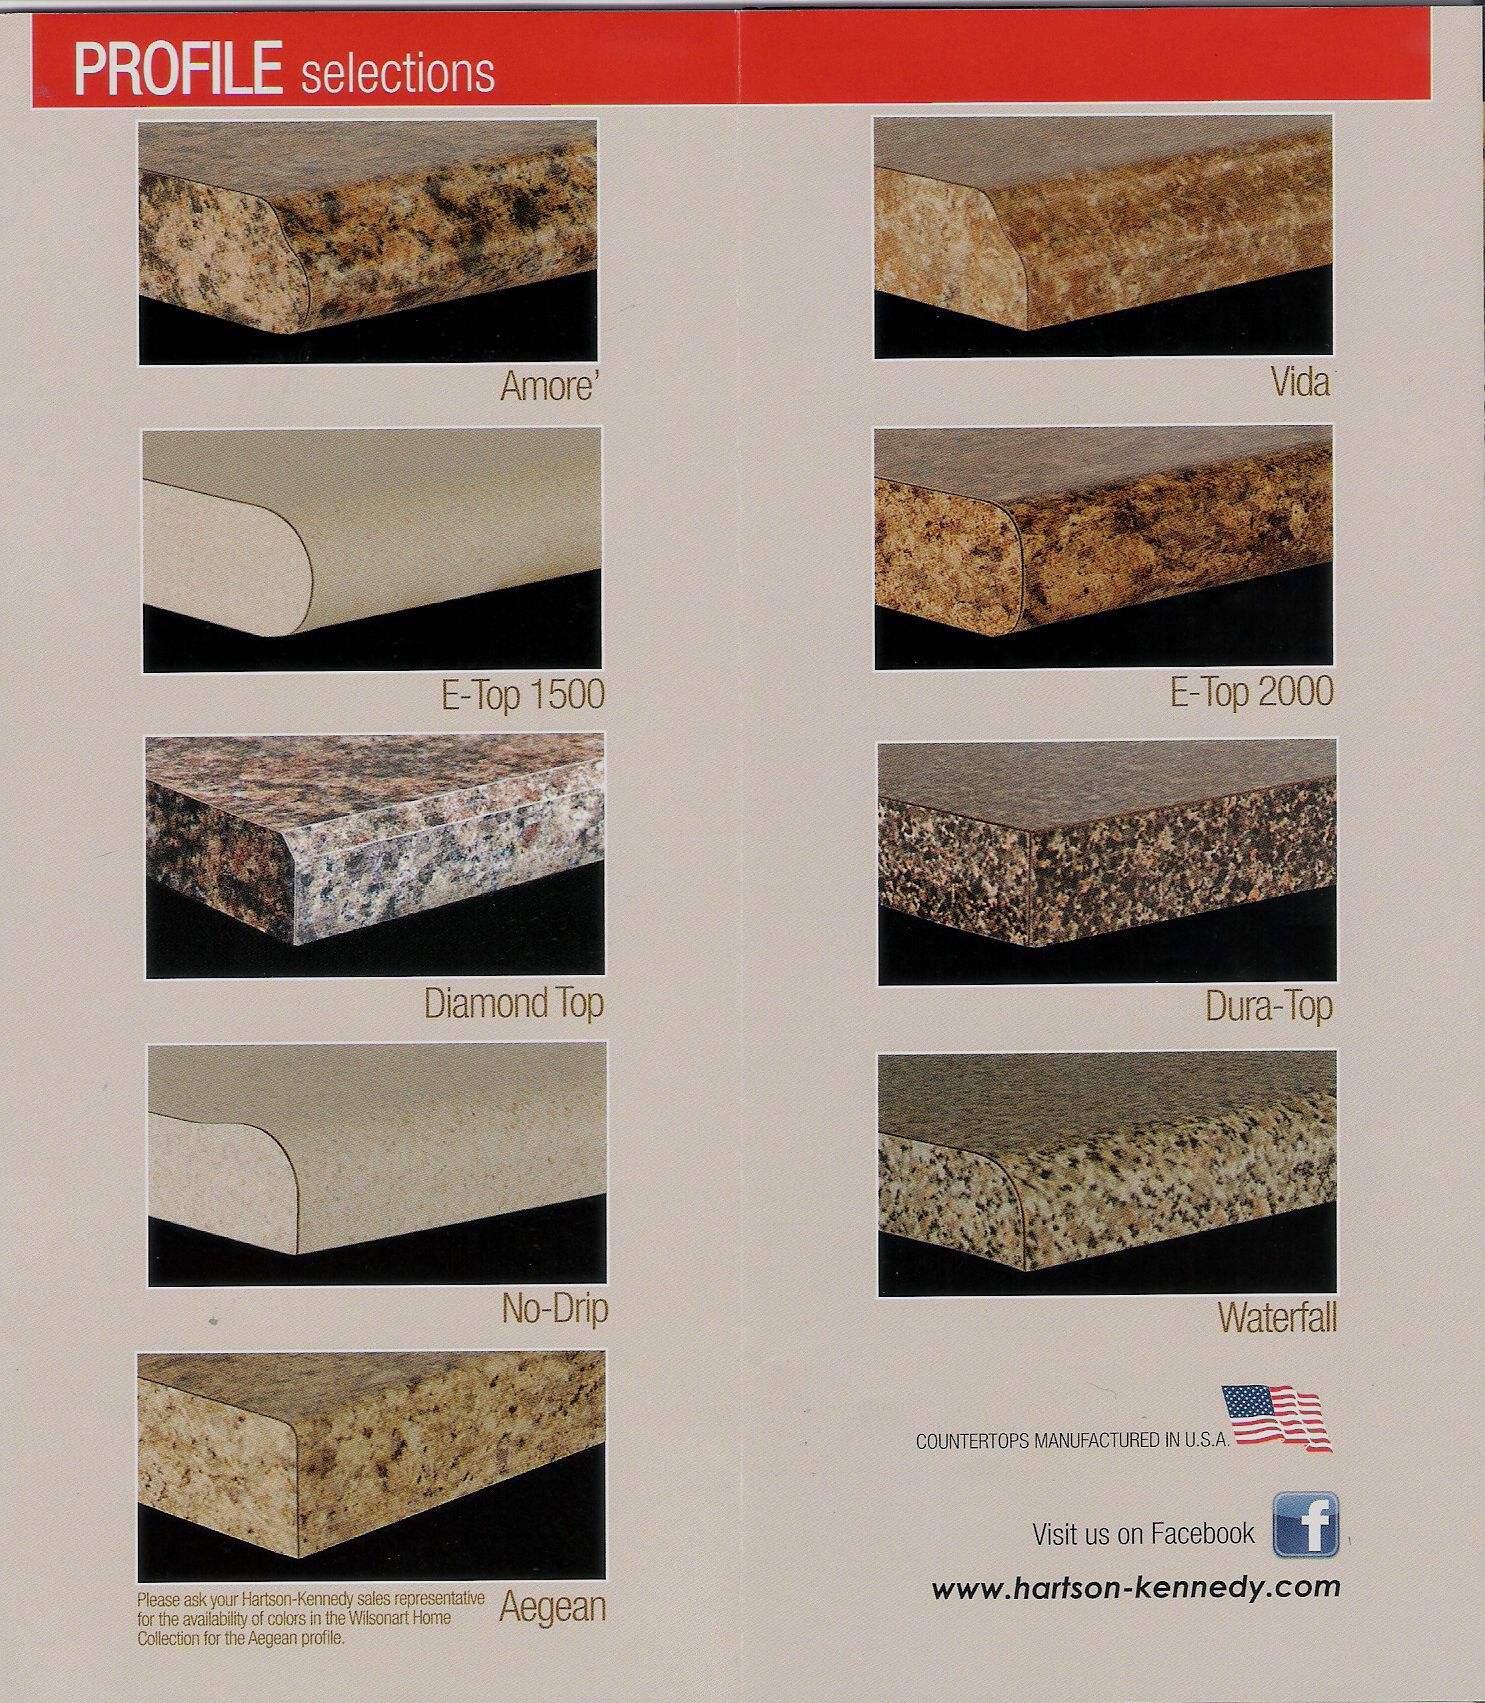 Hartson Kennedy Ogee Edge Amore Counters Laminate Countertops